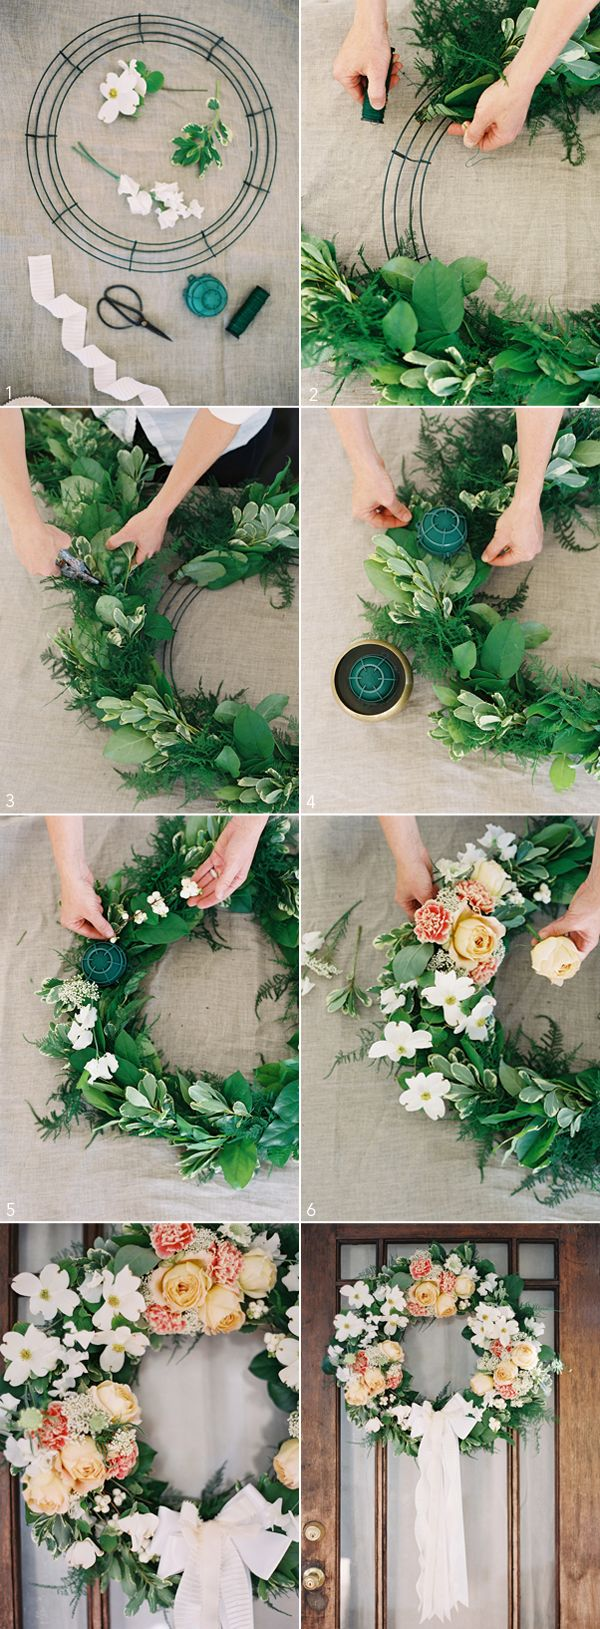 30+ Romantic Wedding Wreath Ideas To Get Inspired